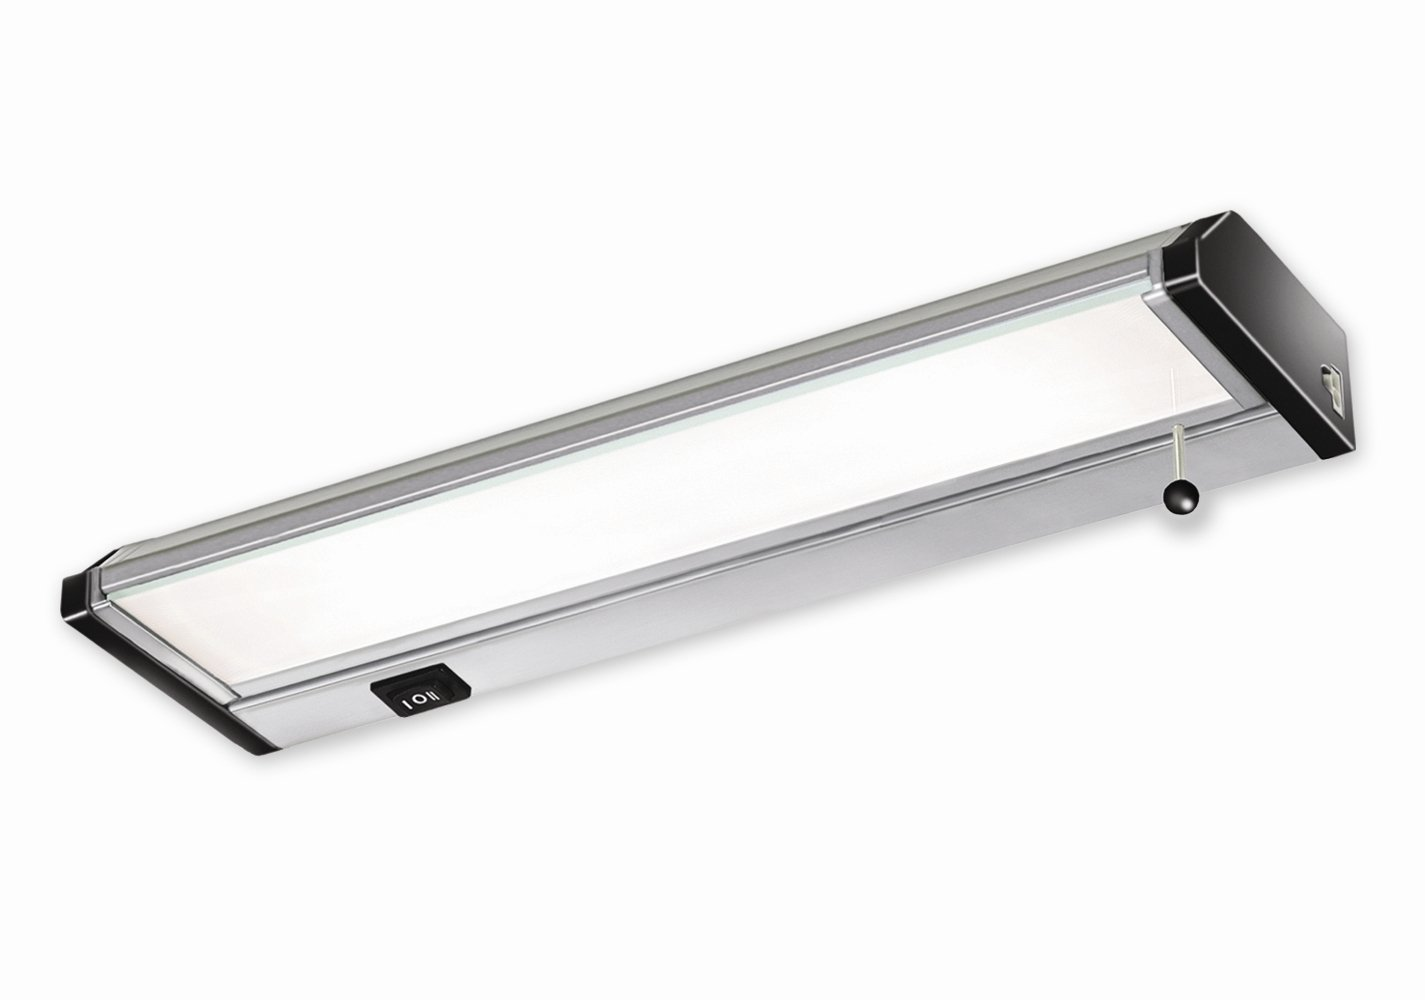 Good Earth Lighting G9182D-SSX-I 12-inch Xenon Convertible Under Cabinet Light Bar, Stainless Steel